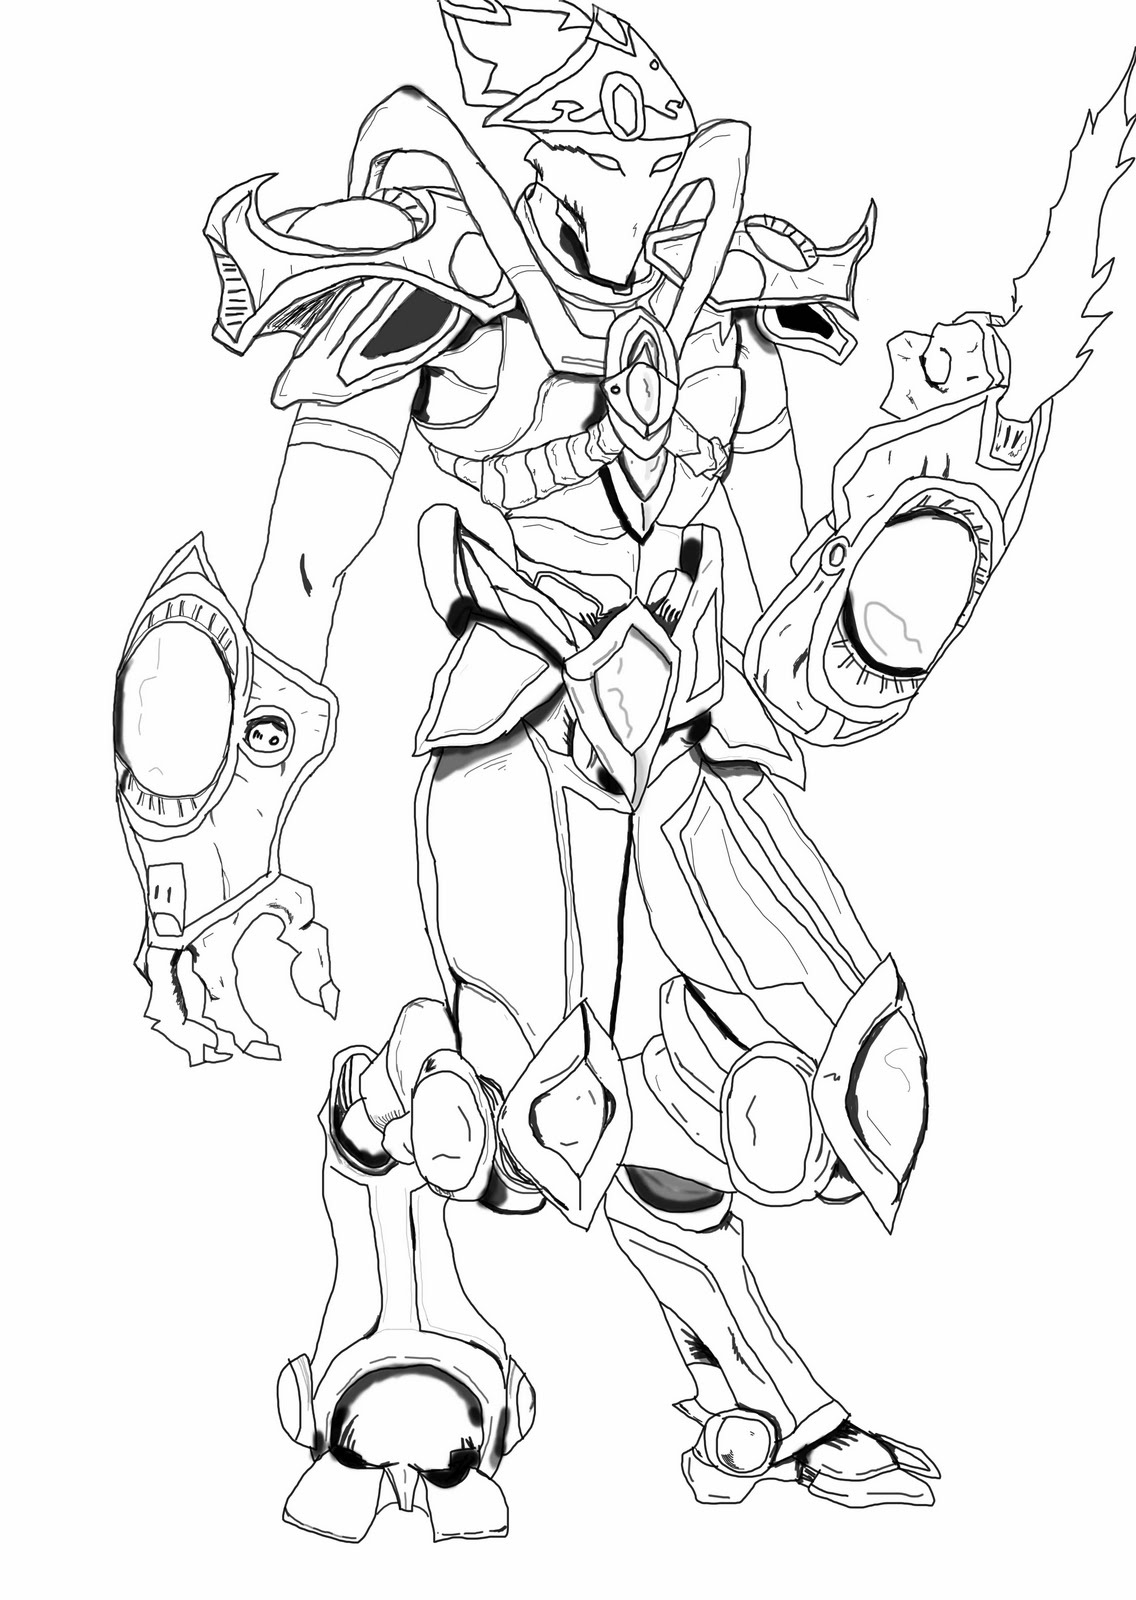 Protoss starcraft 2 coloring pages coloring coloring pages for Starcraft coloring pages